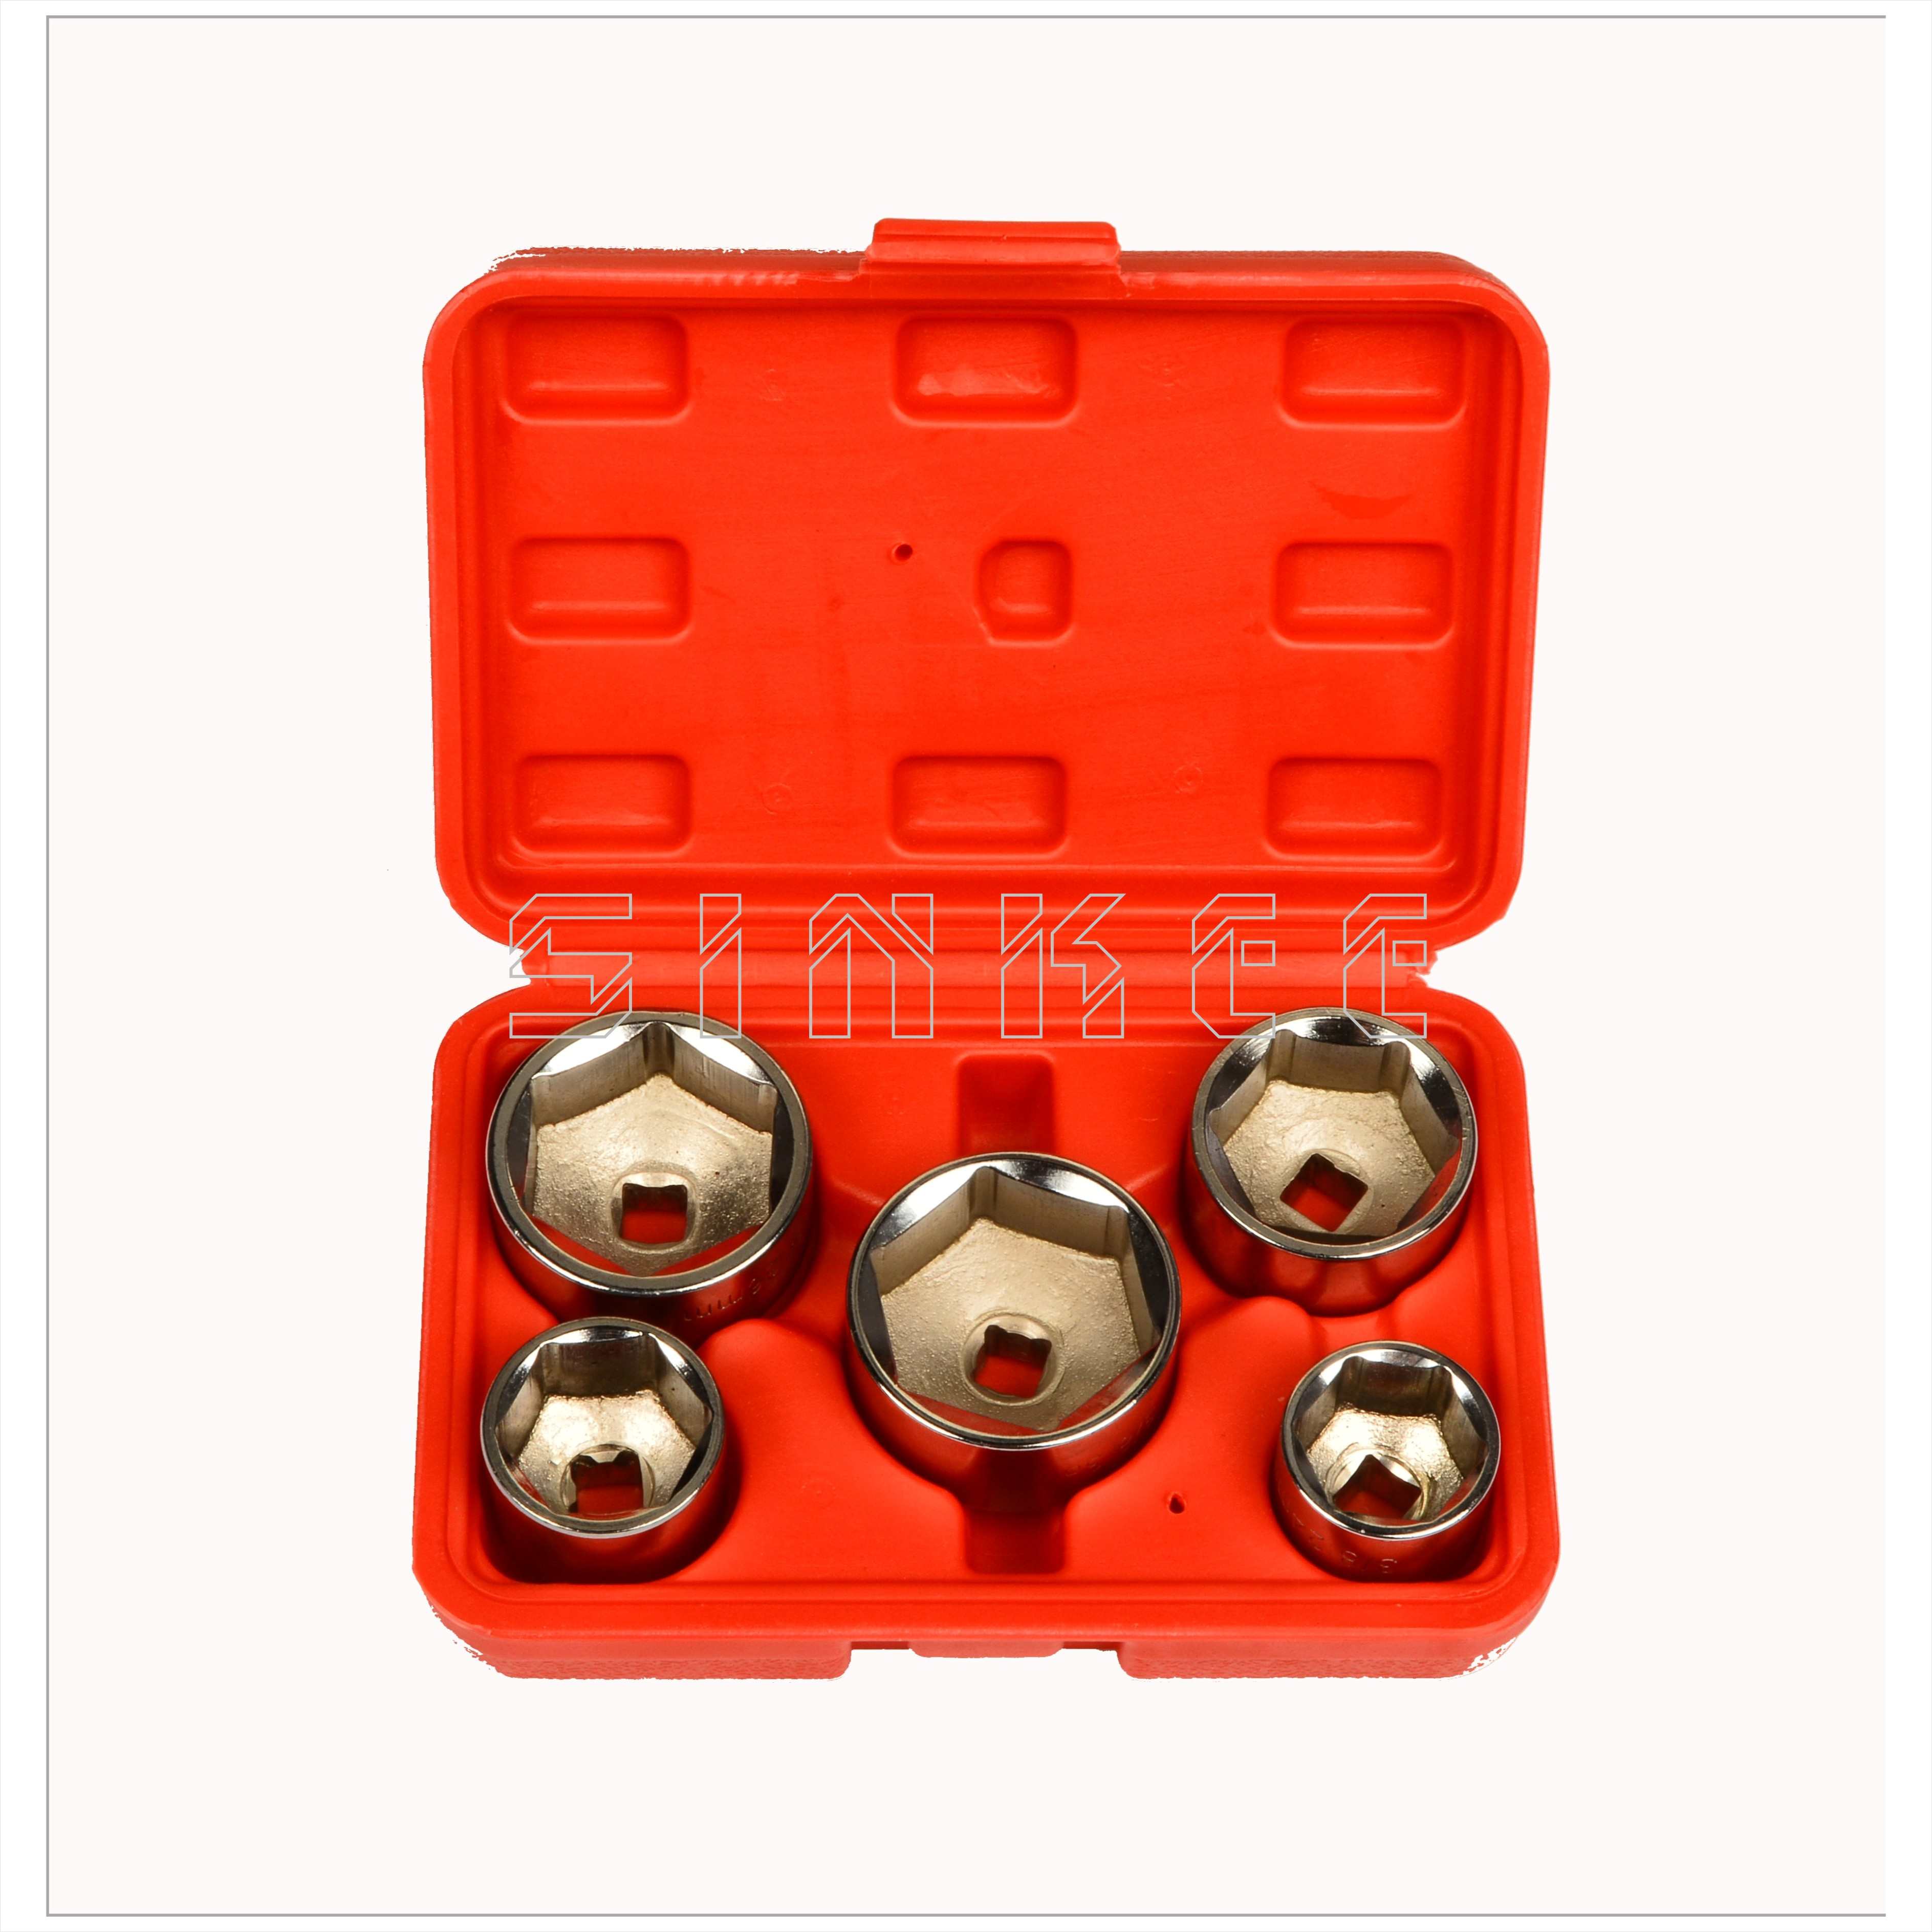 5pc-oil-filter-socket-set-removal-tool-3-8-drive-24-27-fontb32-b-font-36-38mm